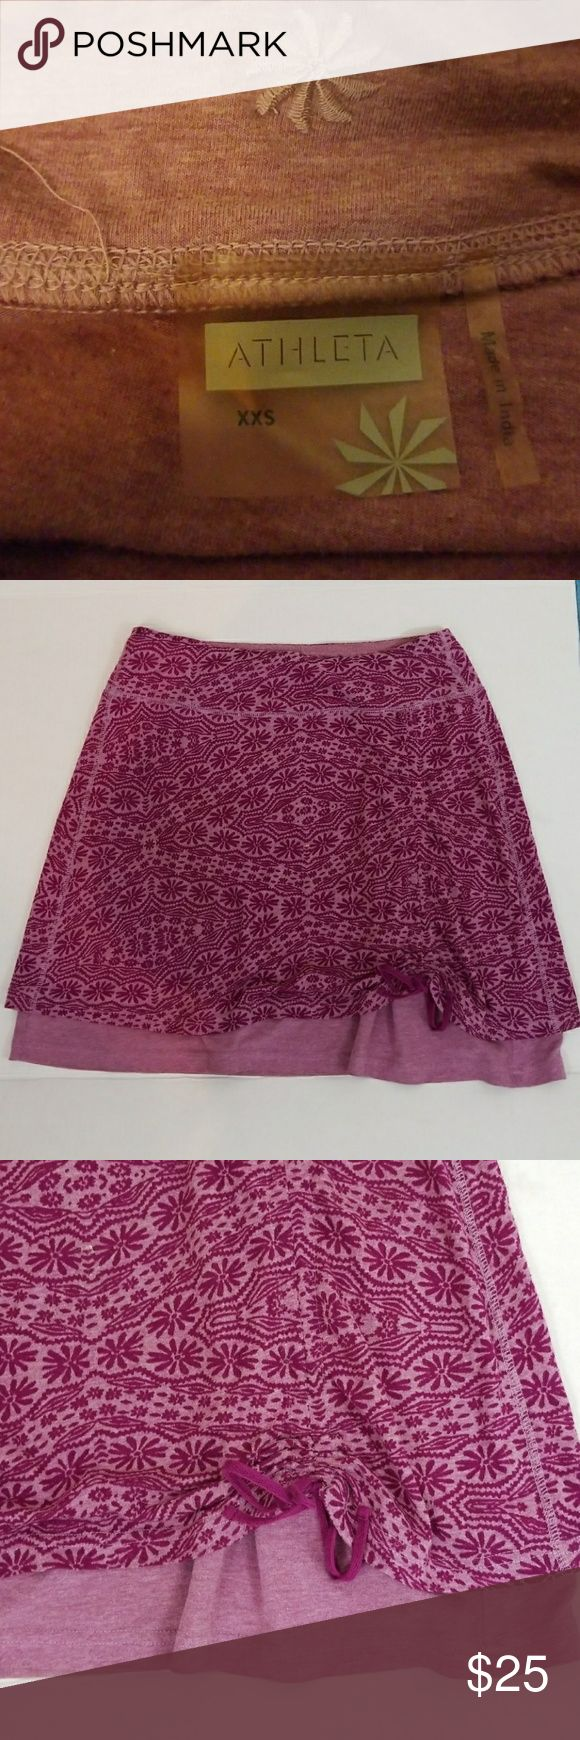 Athleta skirt xxs 💖💖💖deep pink and rose skirt. Extra soft cotton like a favorite t shirt.  2 layers, drawstring gather on the front right. Listed as xxs, however run large, please refer to the measurements above Athleta Skirts Mini